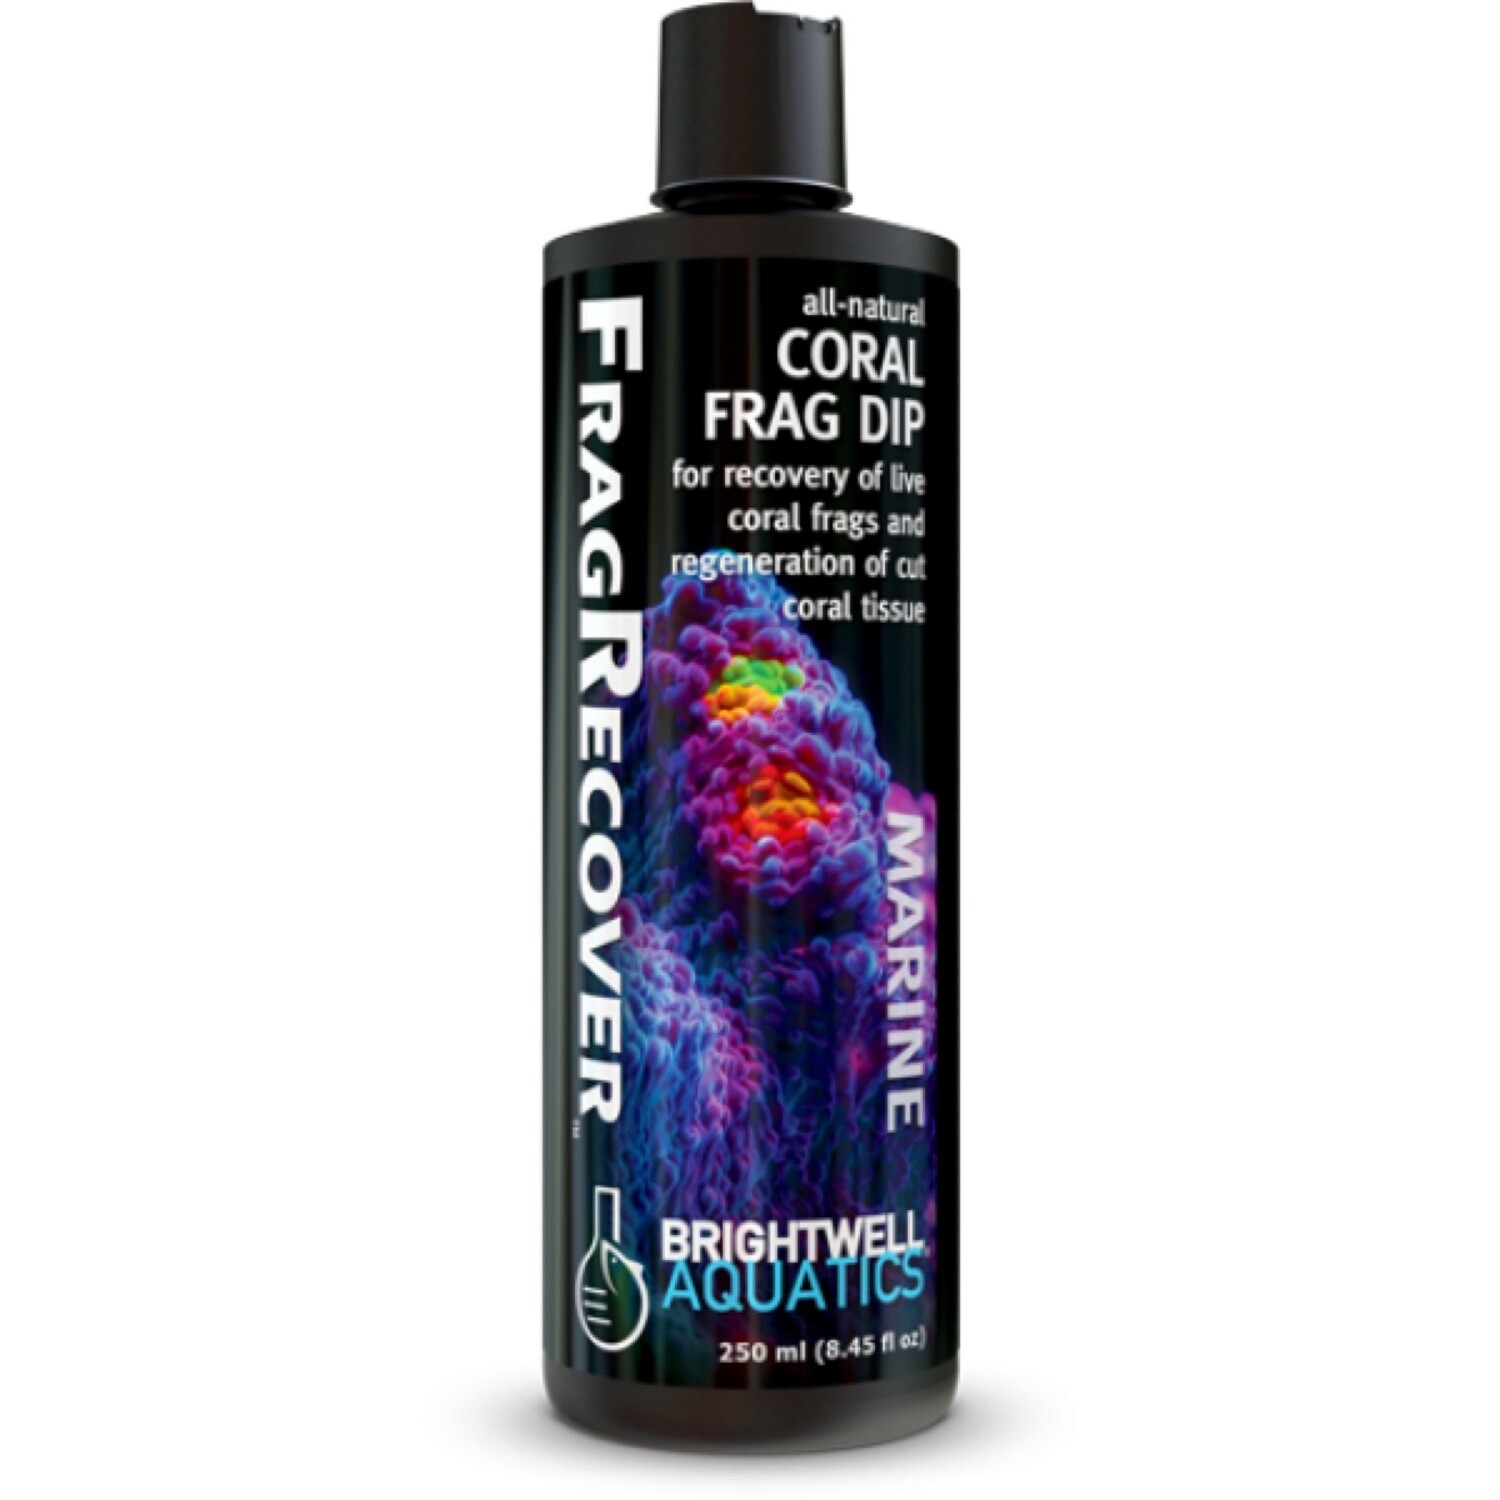 Brightwell Aquatics FragRecover 250 ml